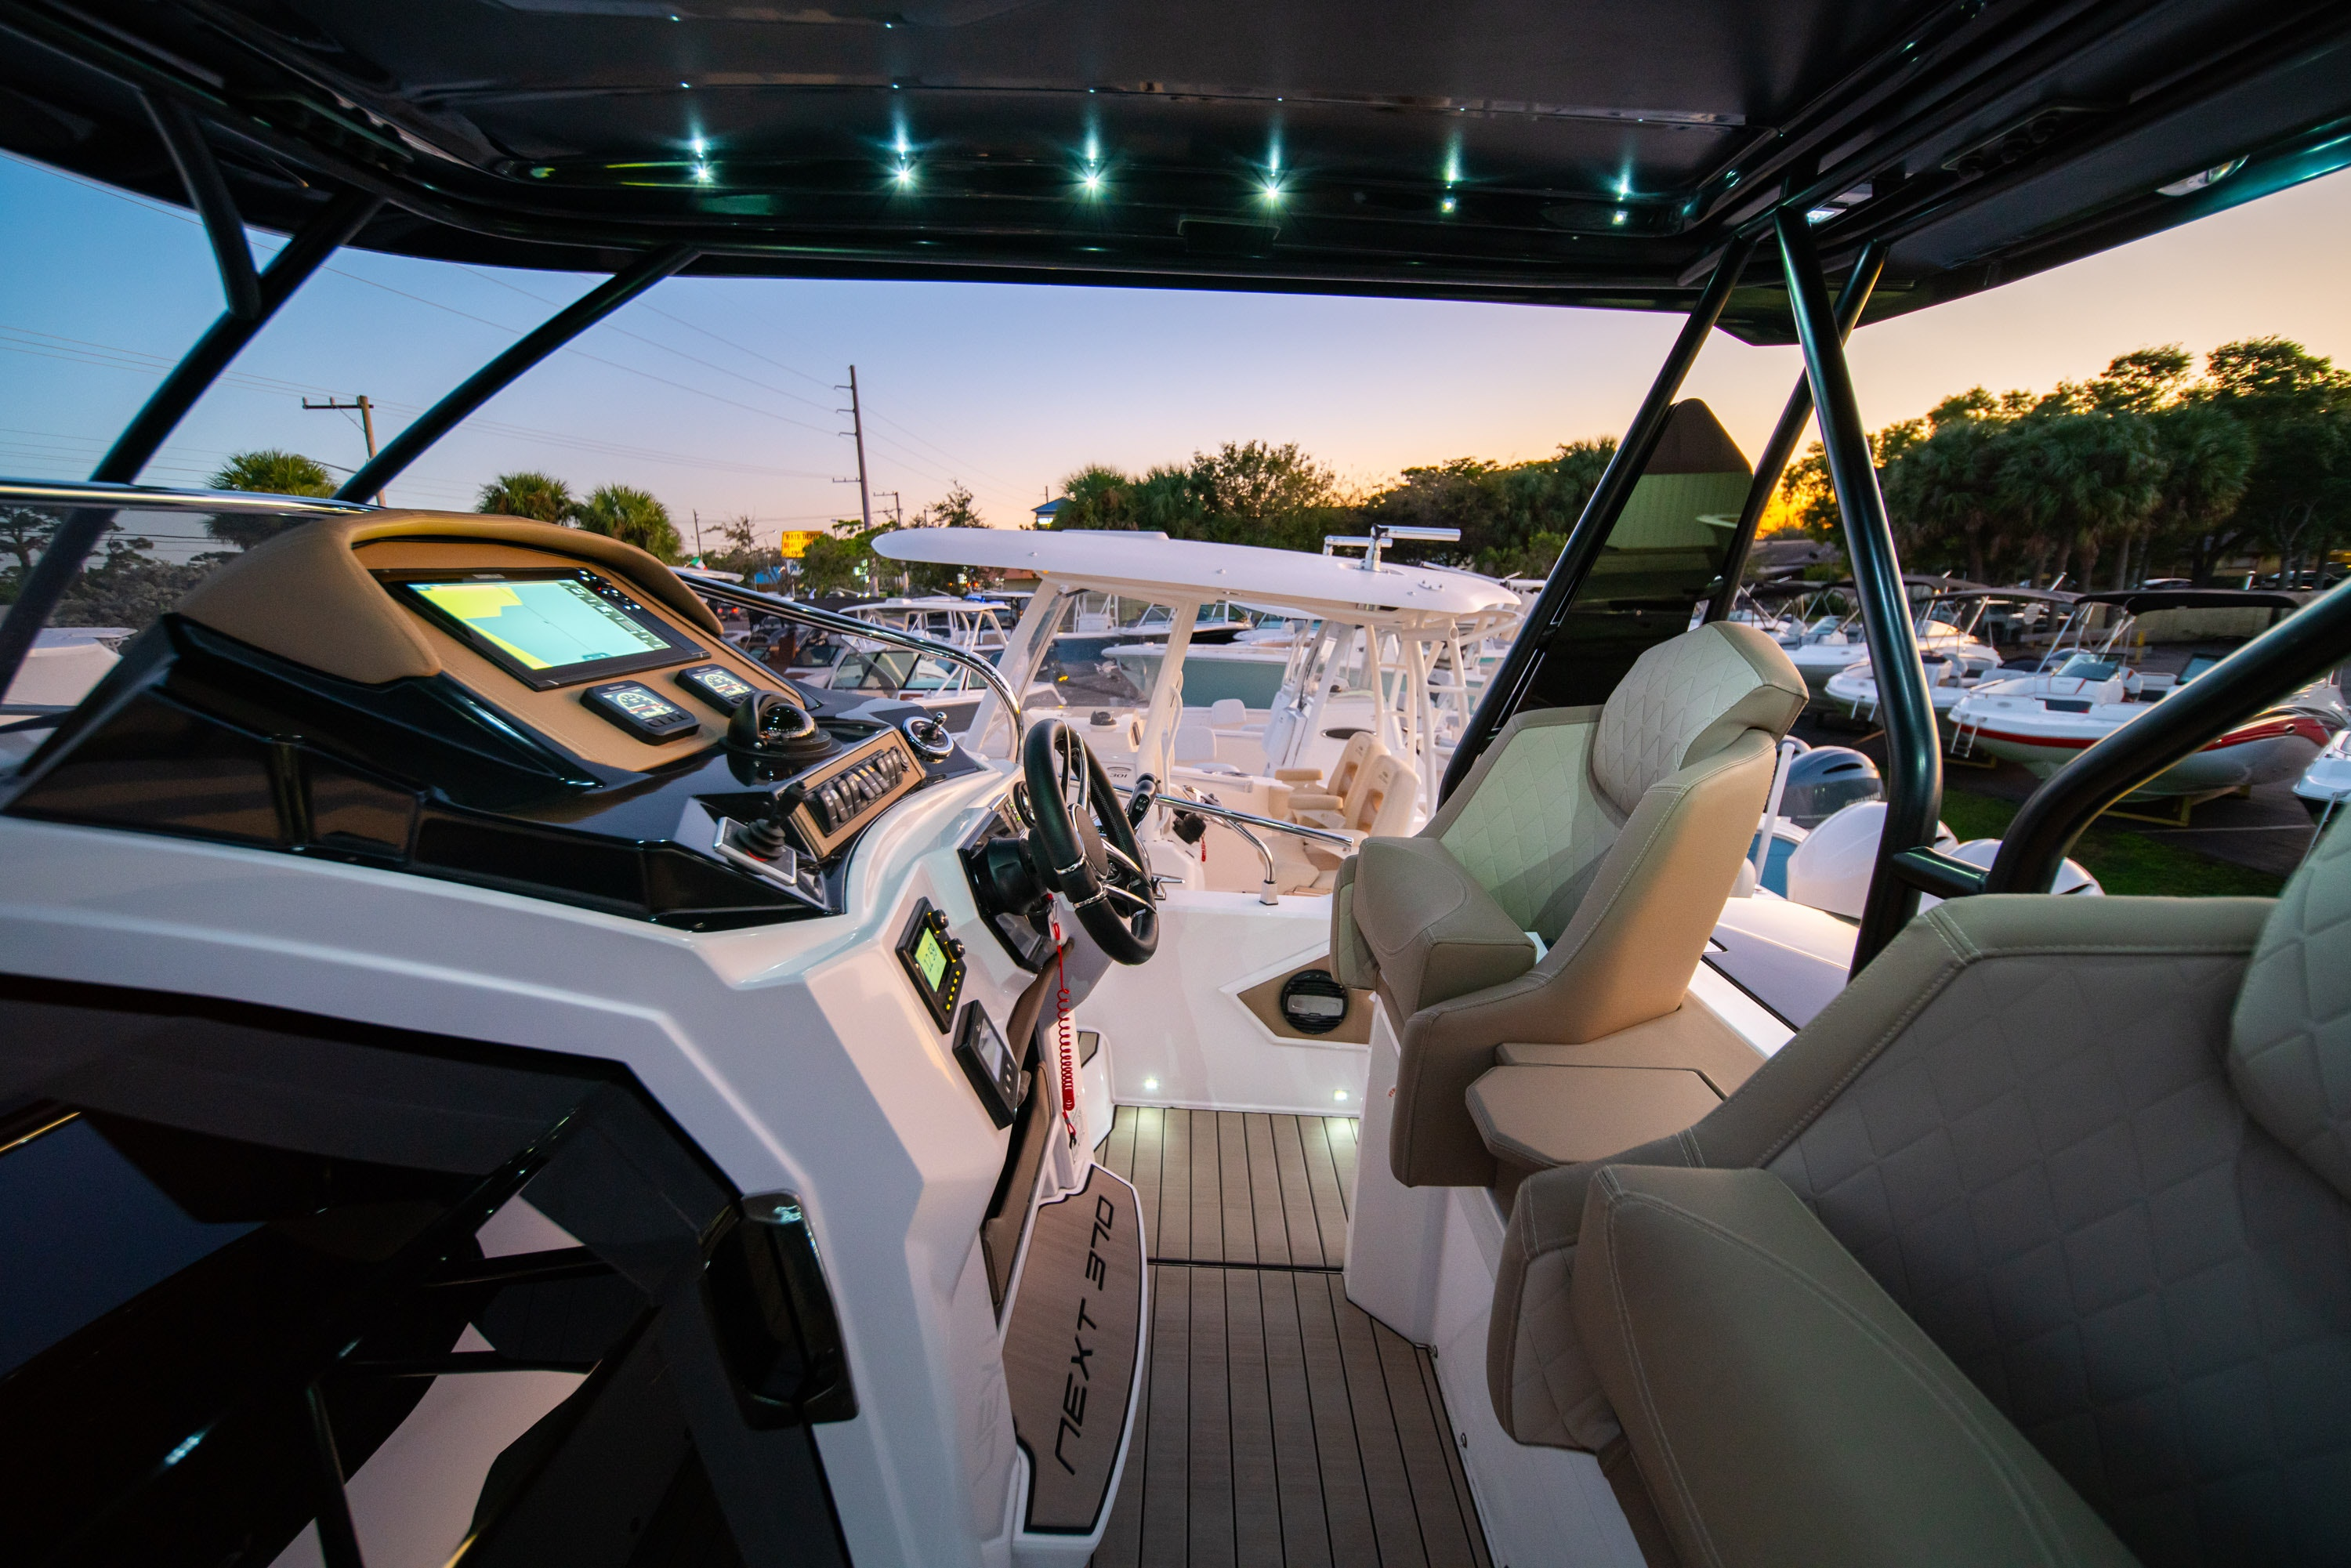 Thumbnail 19 for New 2019 Ranieri Next 370 SH boat for sale in West Palm Beach, FL